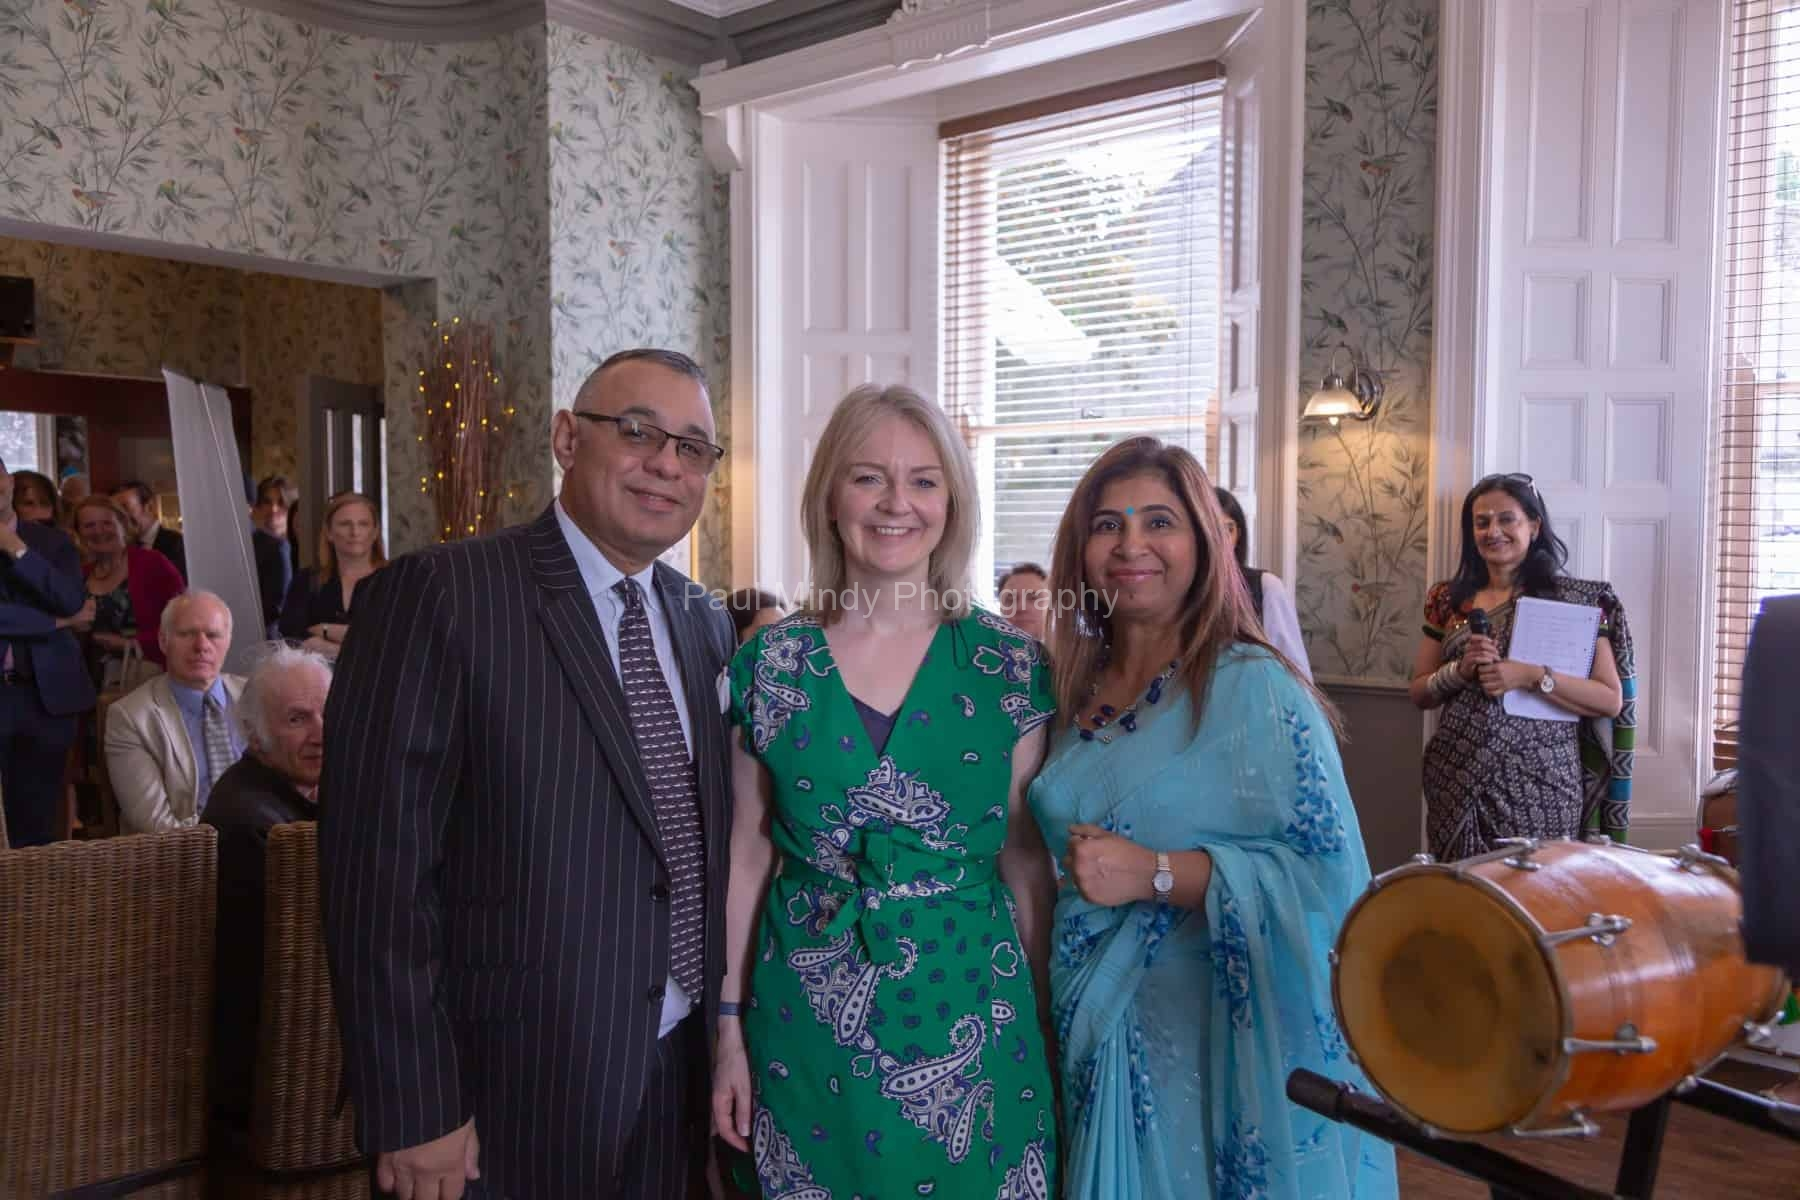 Punjabi-Festival-Launch-Liz-Truss-Thomas-Paine-2